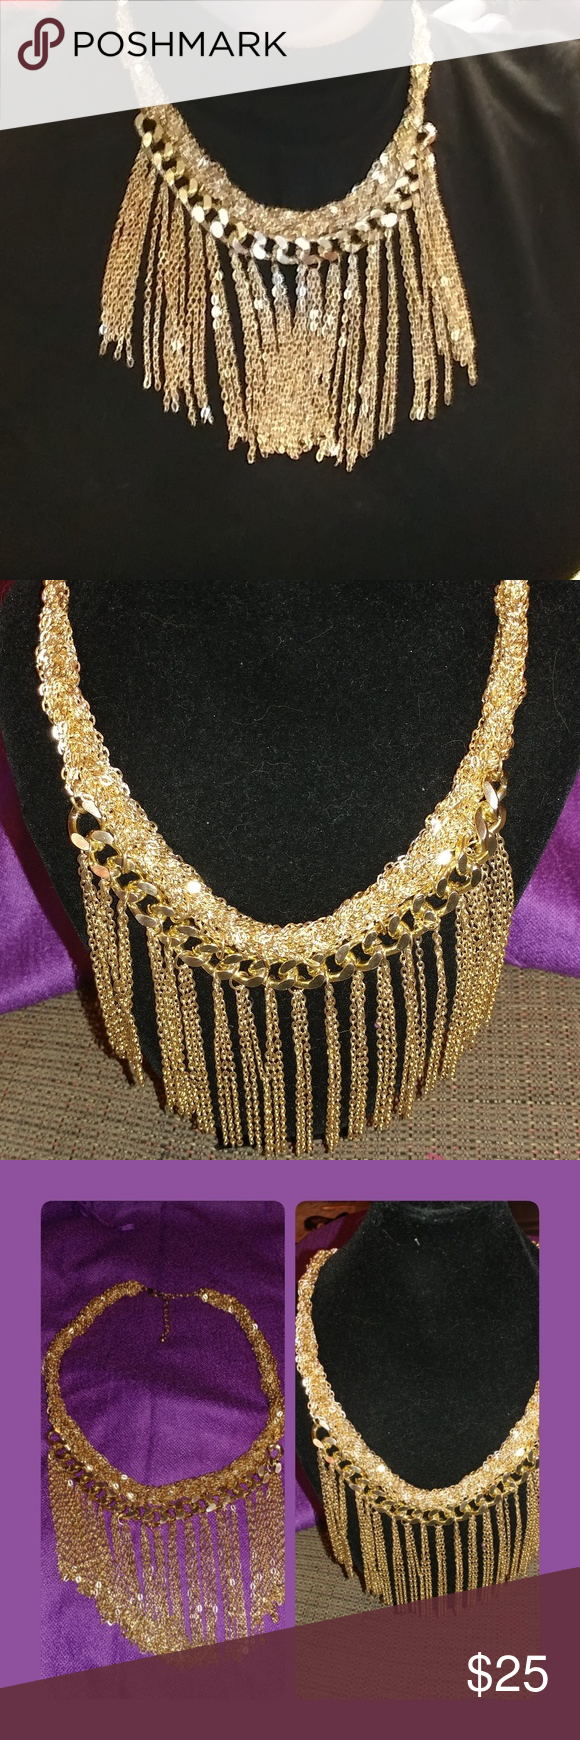 Golden Chain Fringe Choker Necklace Golden Chain Fringe Choker Necklace Jewelry Necklaces